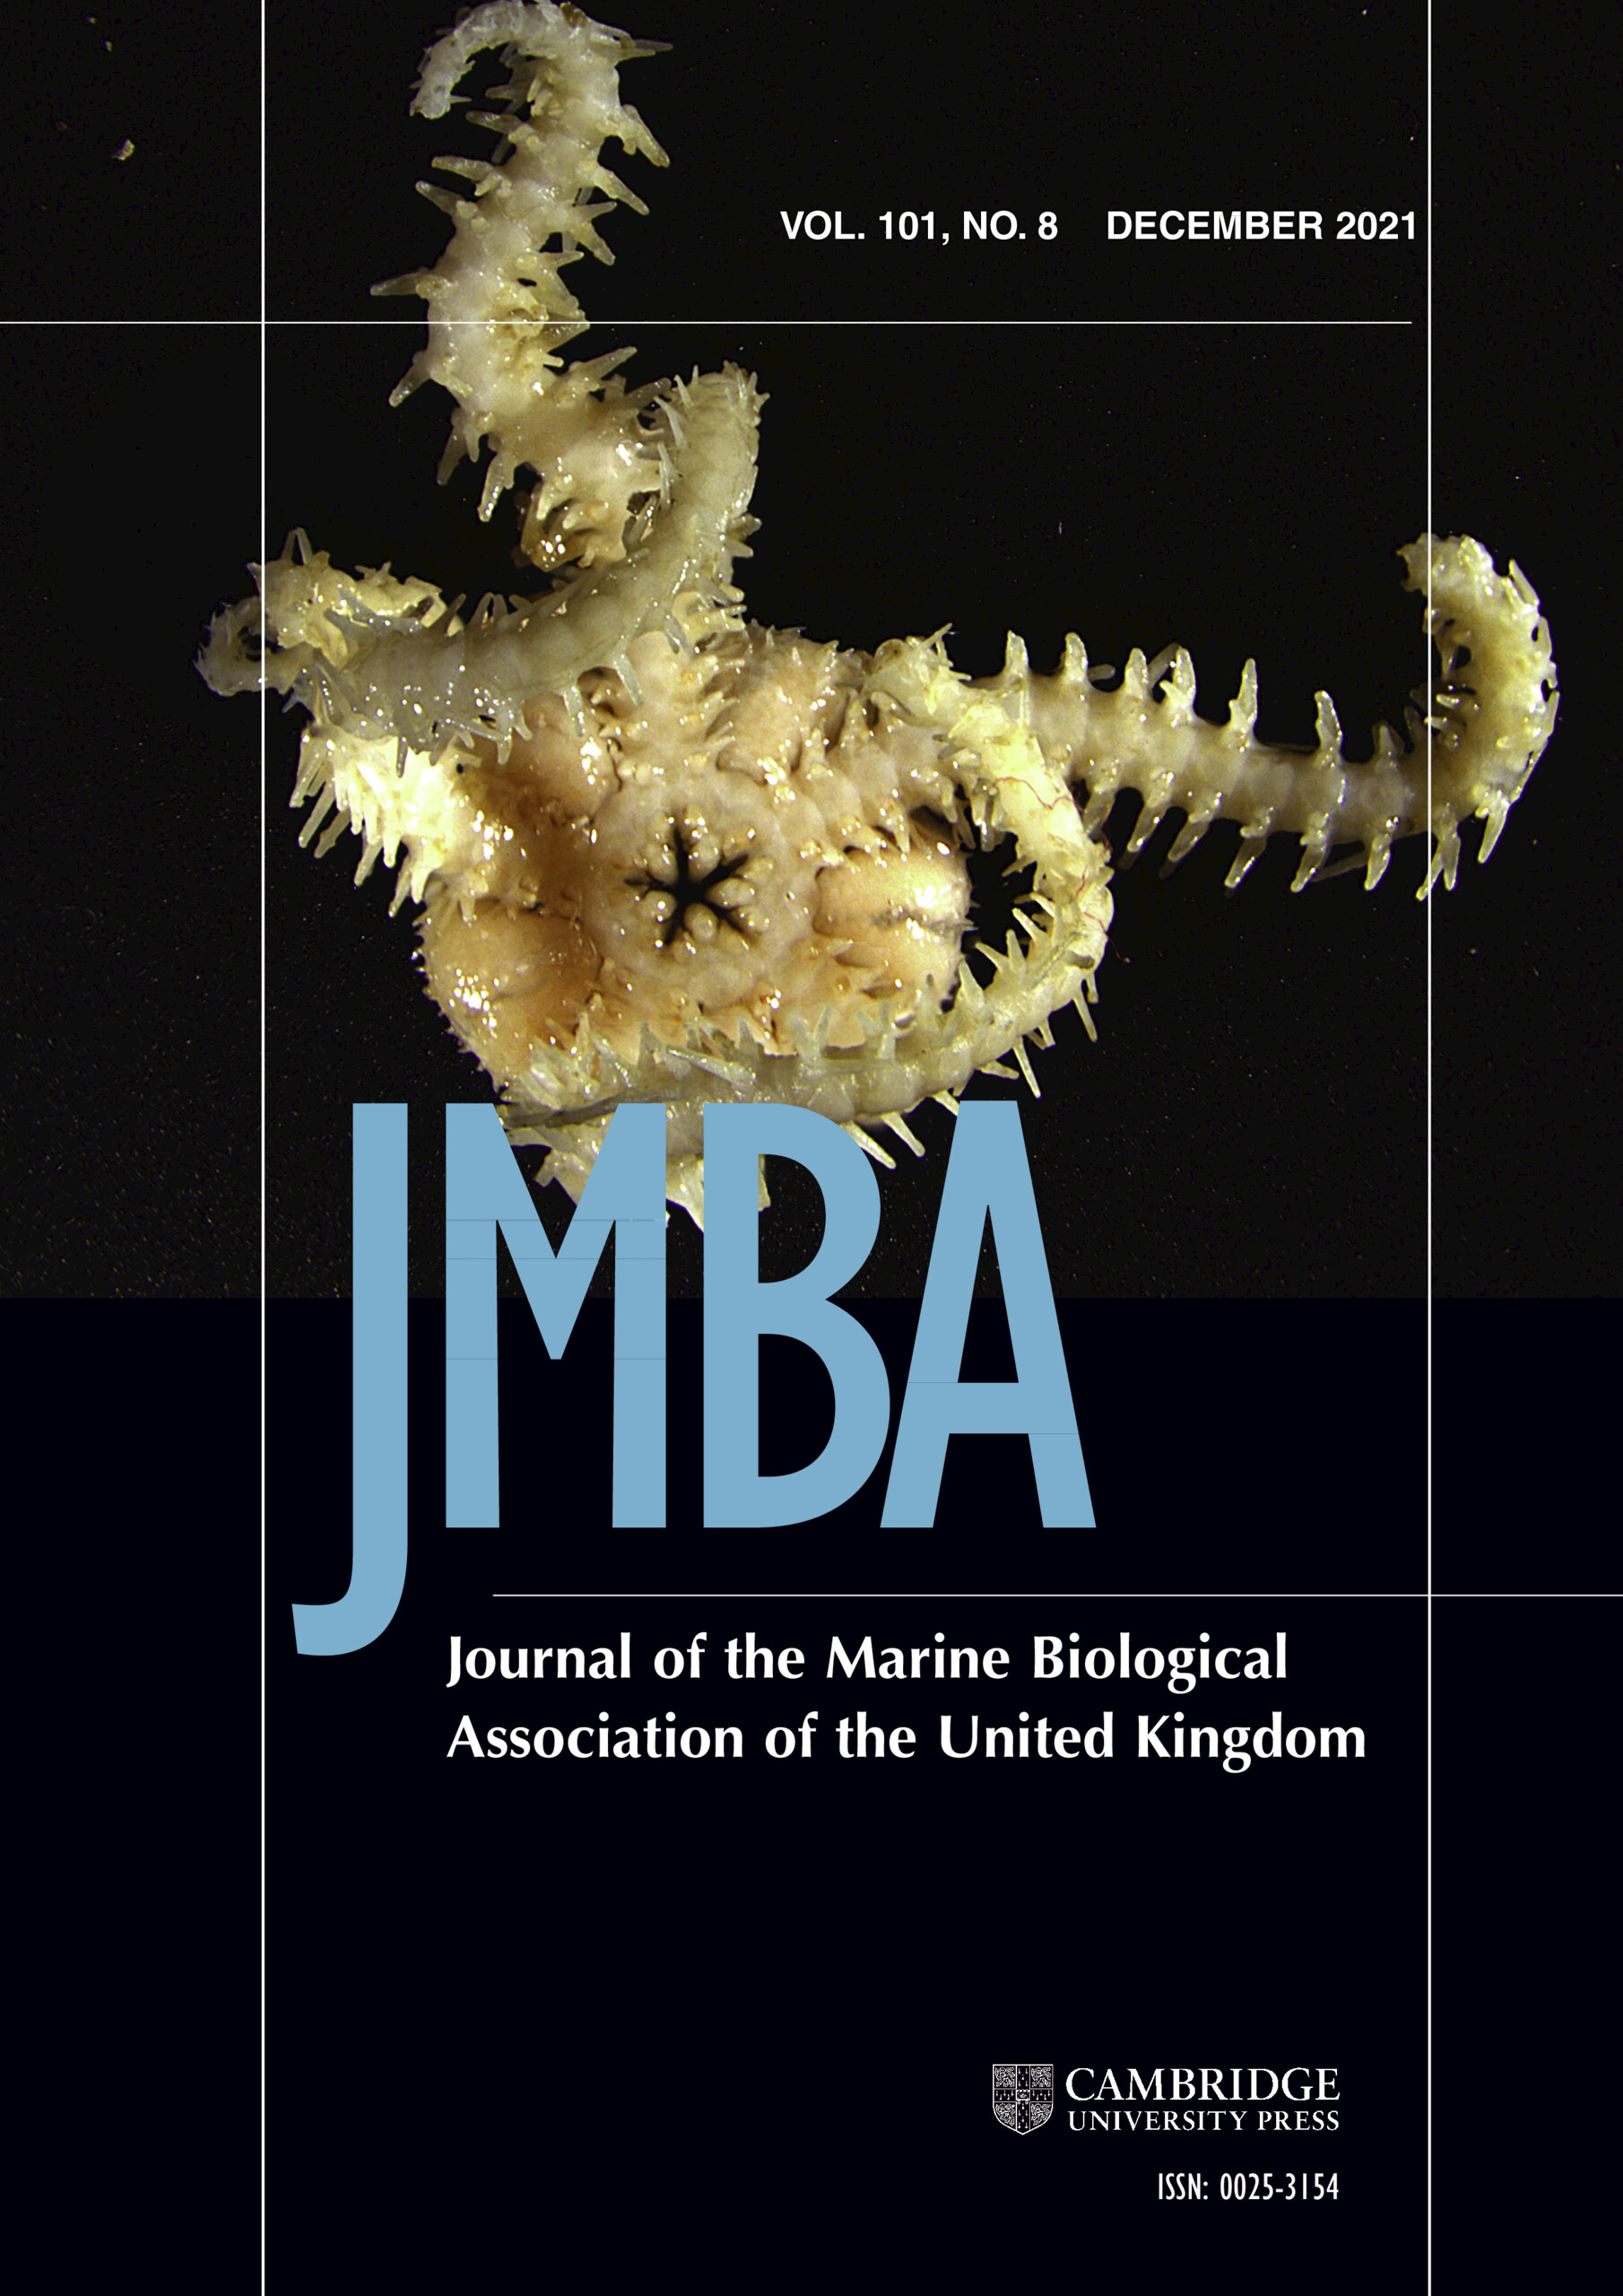 Journal of the Marine Biological Association of the United